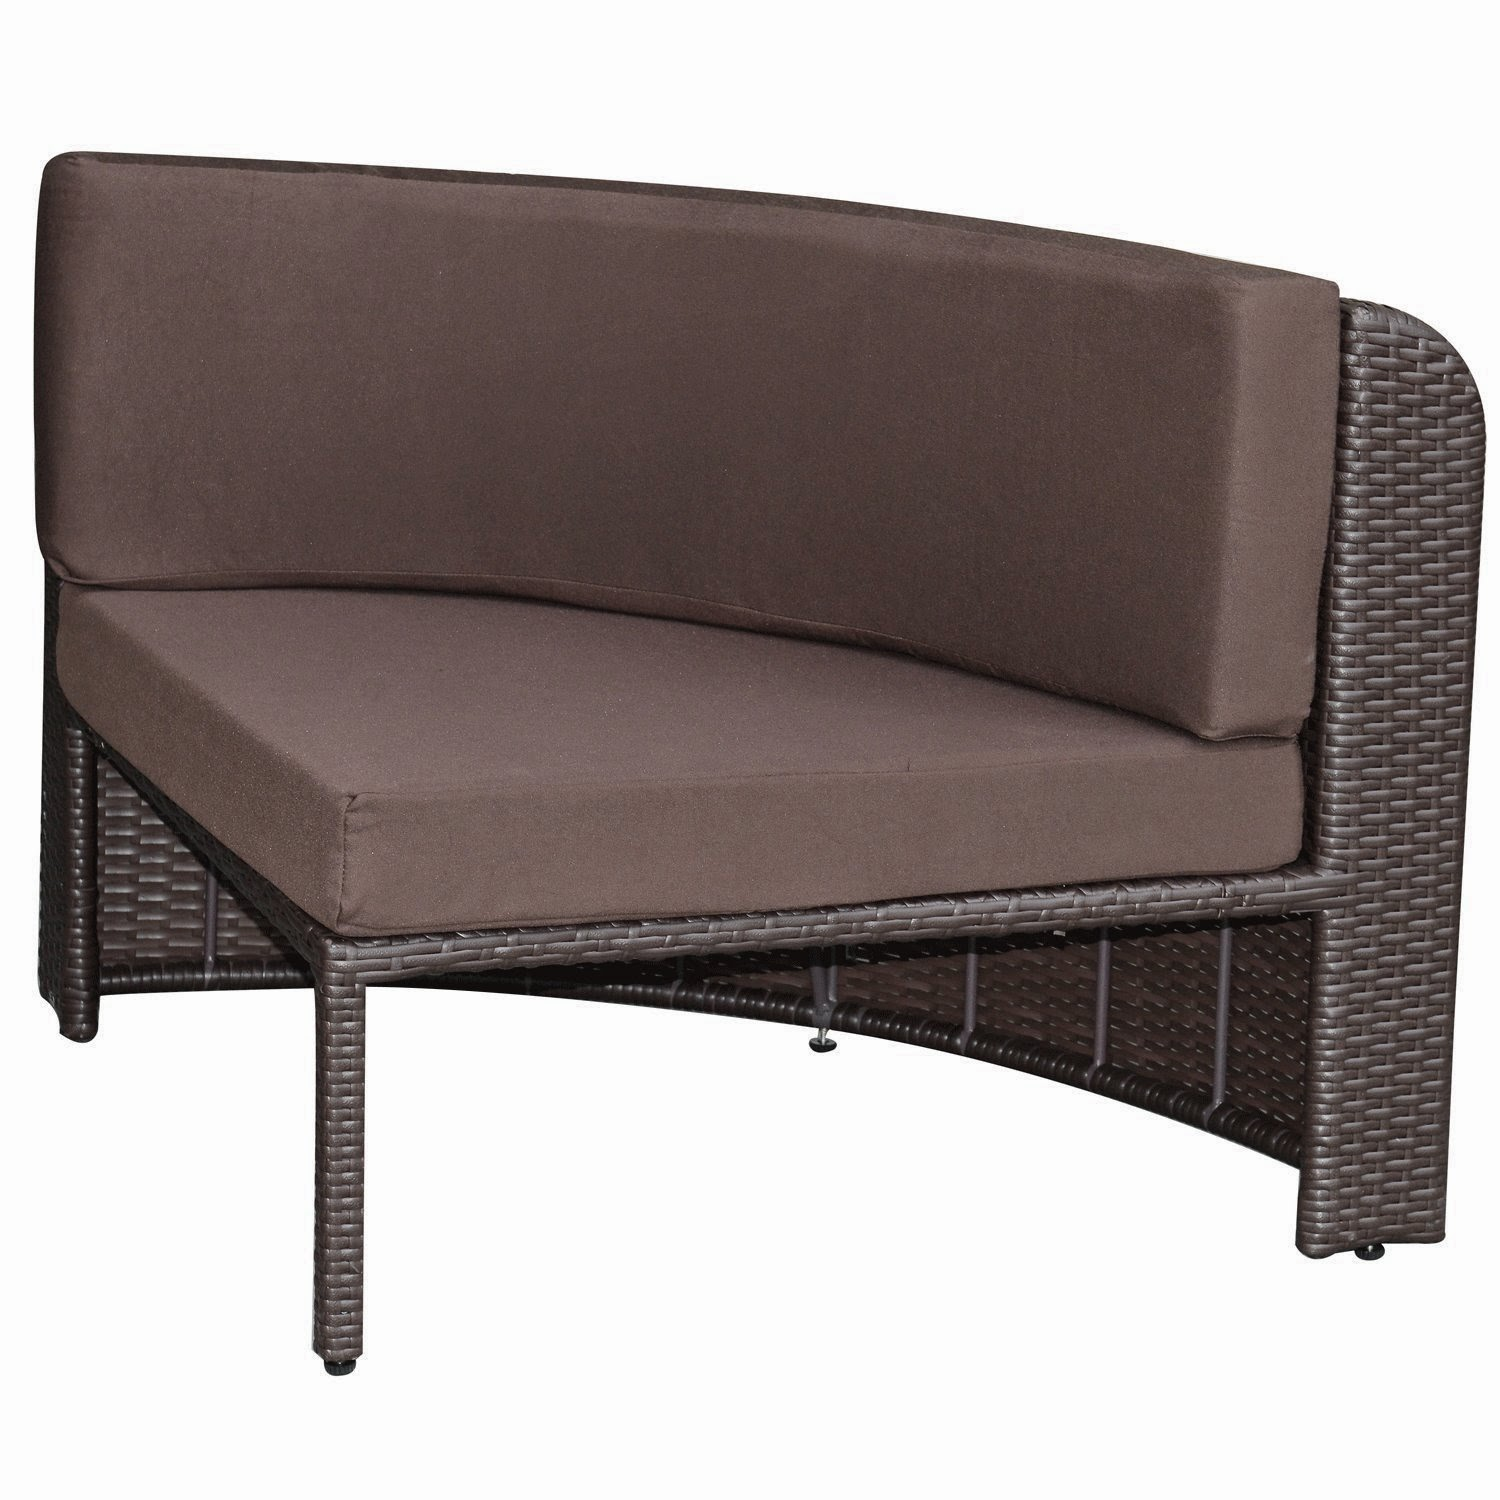 Rattan Outdoor Sofa Leather Sofas Online Melbourne Special Sale Discount 65 Outsunny 8pc Pe